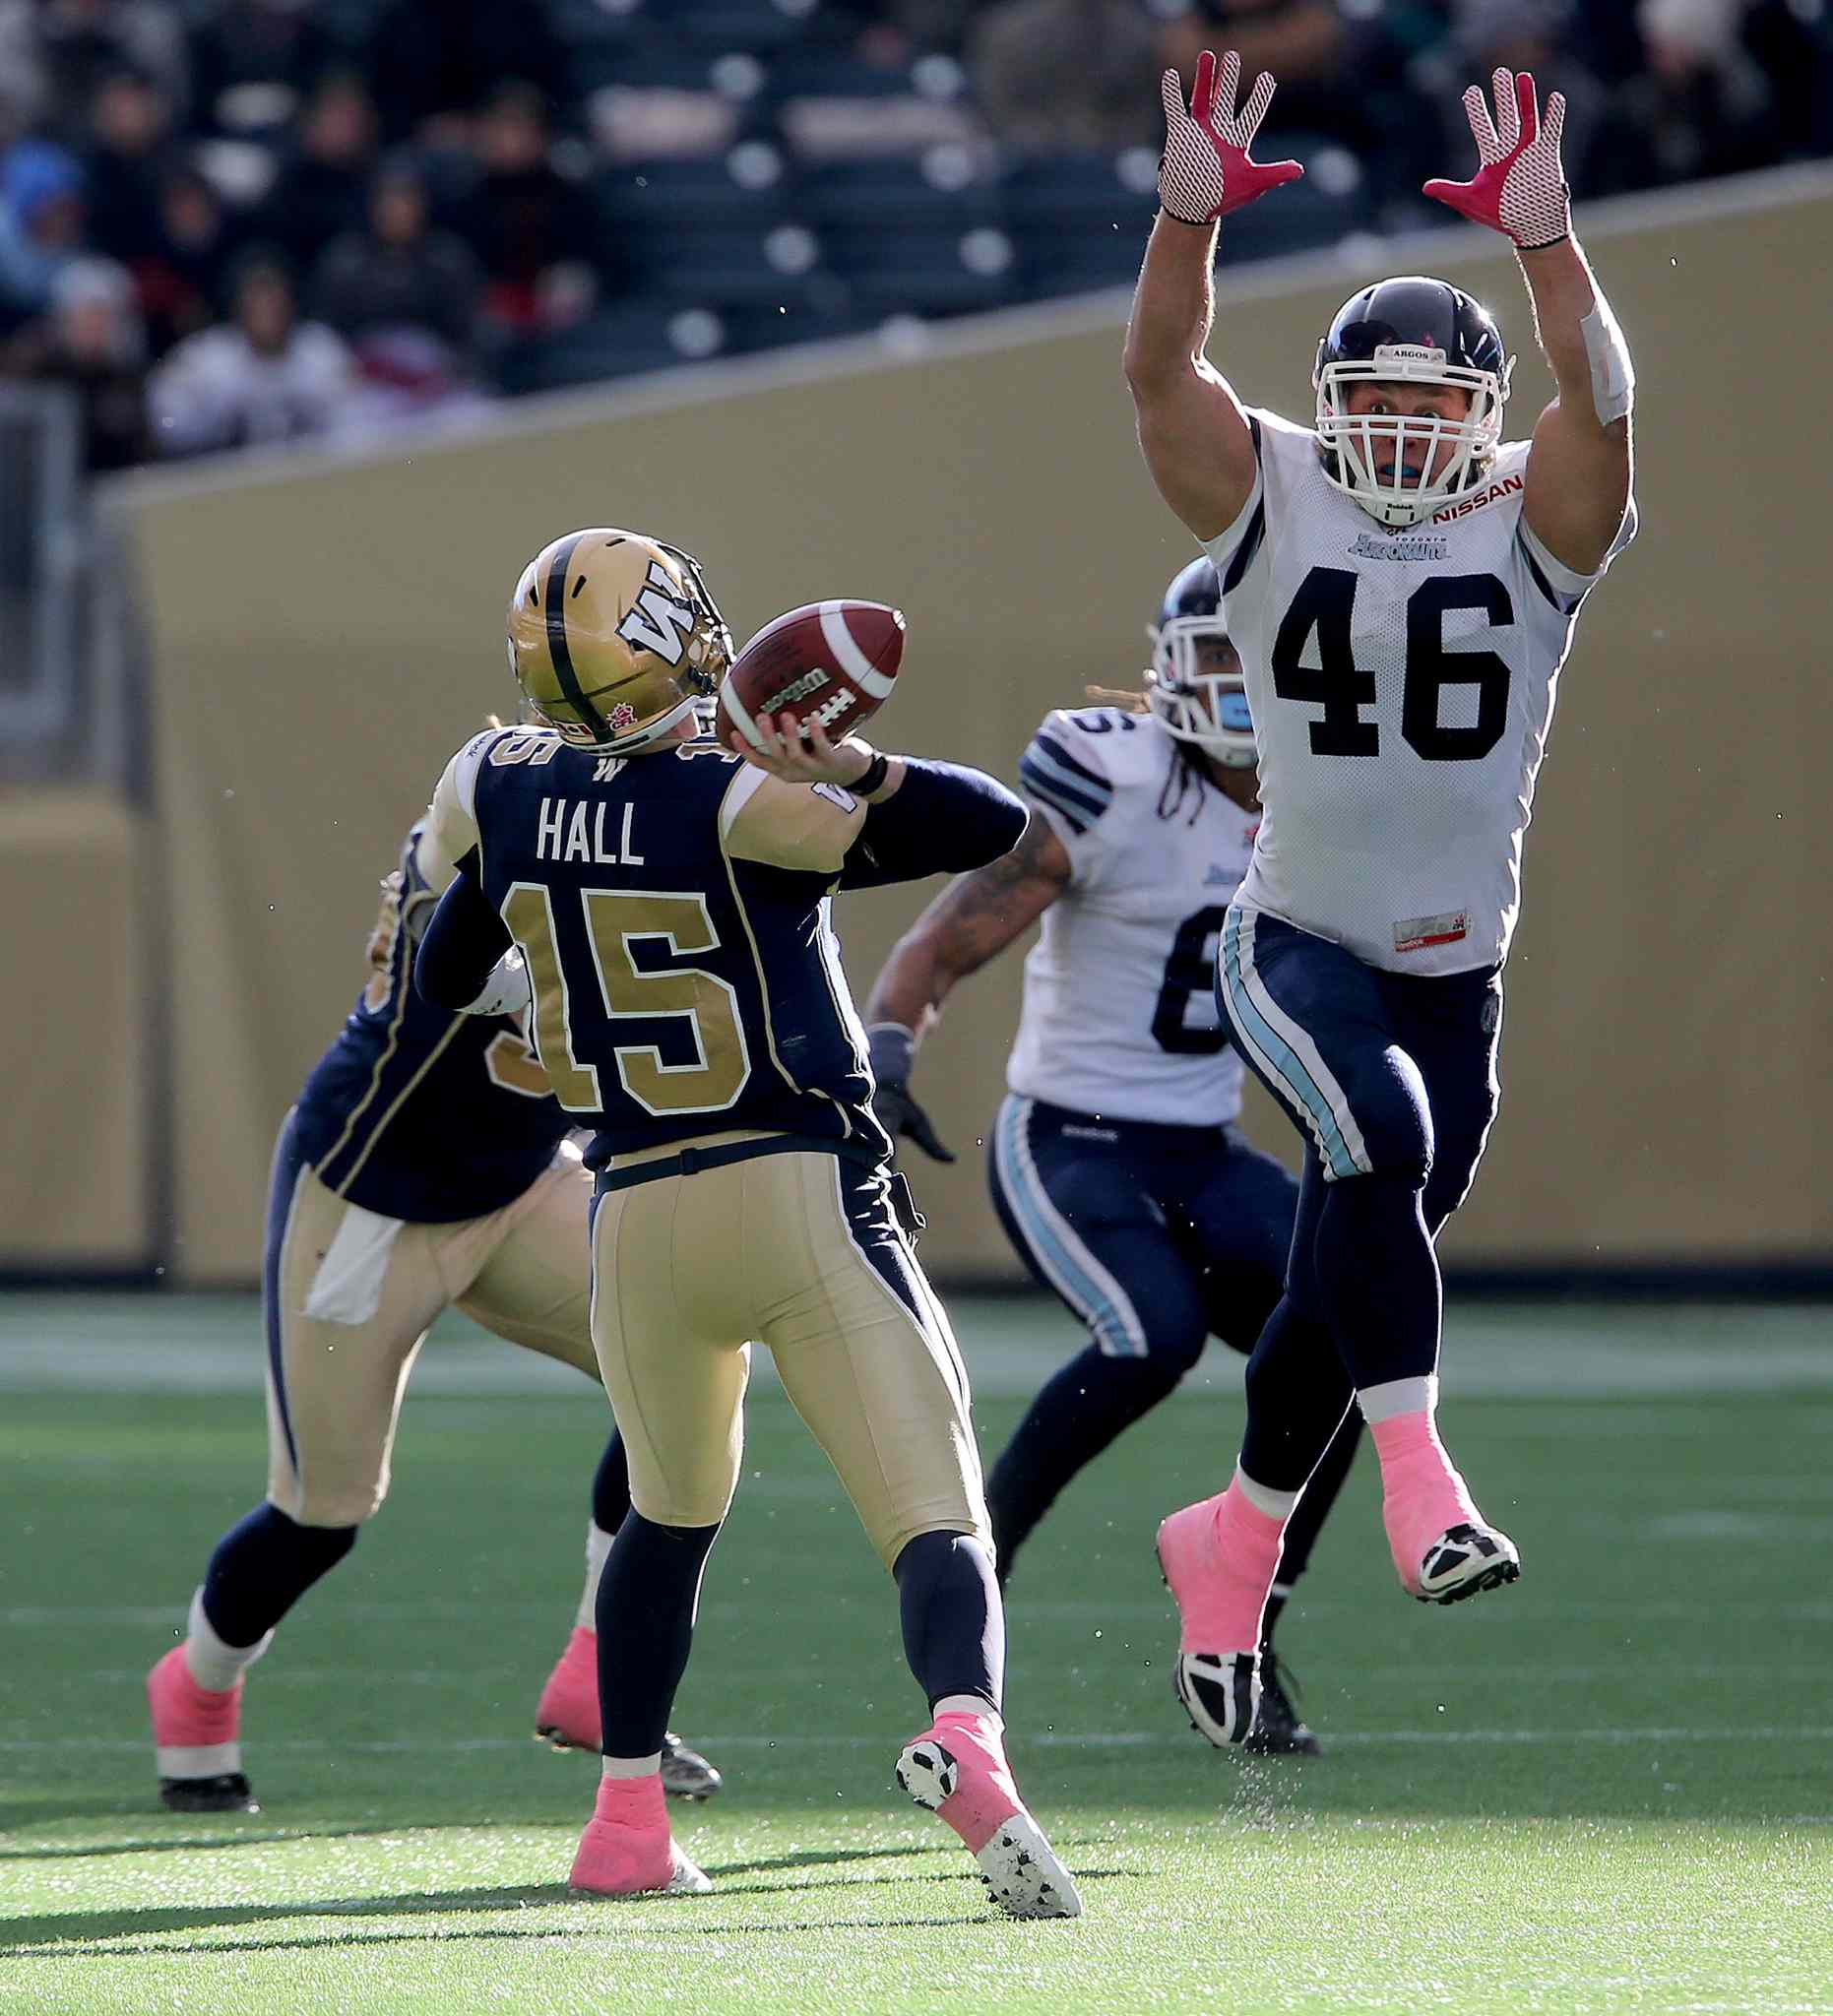 Winnipeg Blue Bombers' quarterback Max Hall (15) manages to throw a long pass over Toronto Argonauts' Jason Pottinger (46) during the second half.